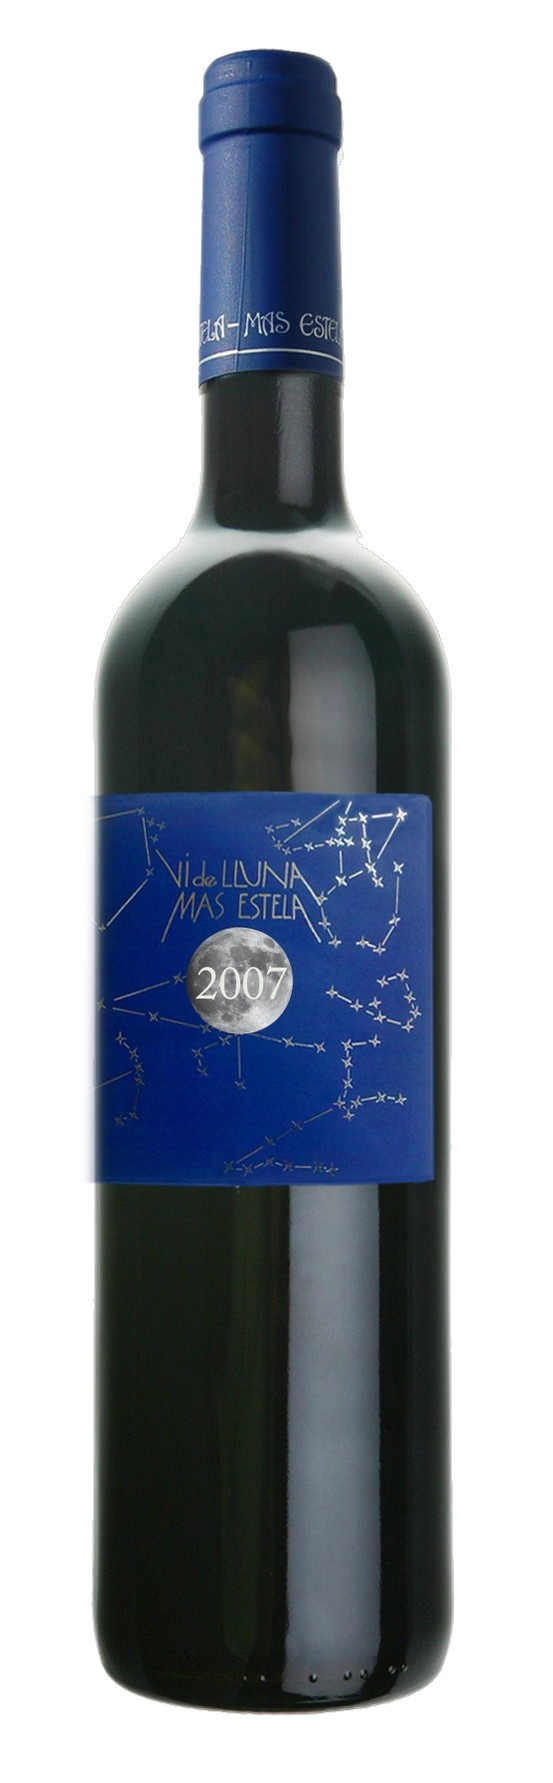 One of the best Spanish wines ever.